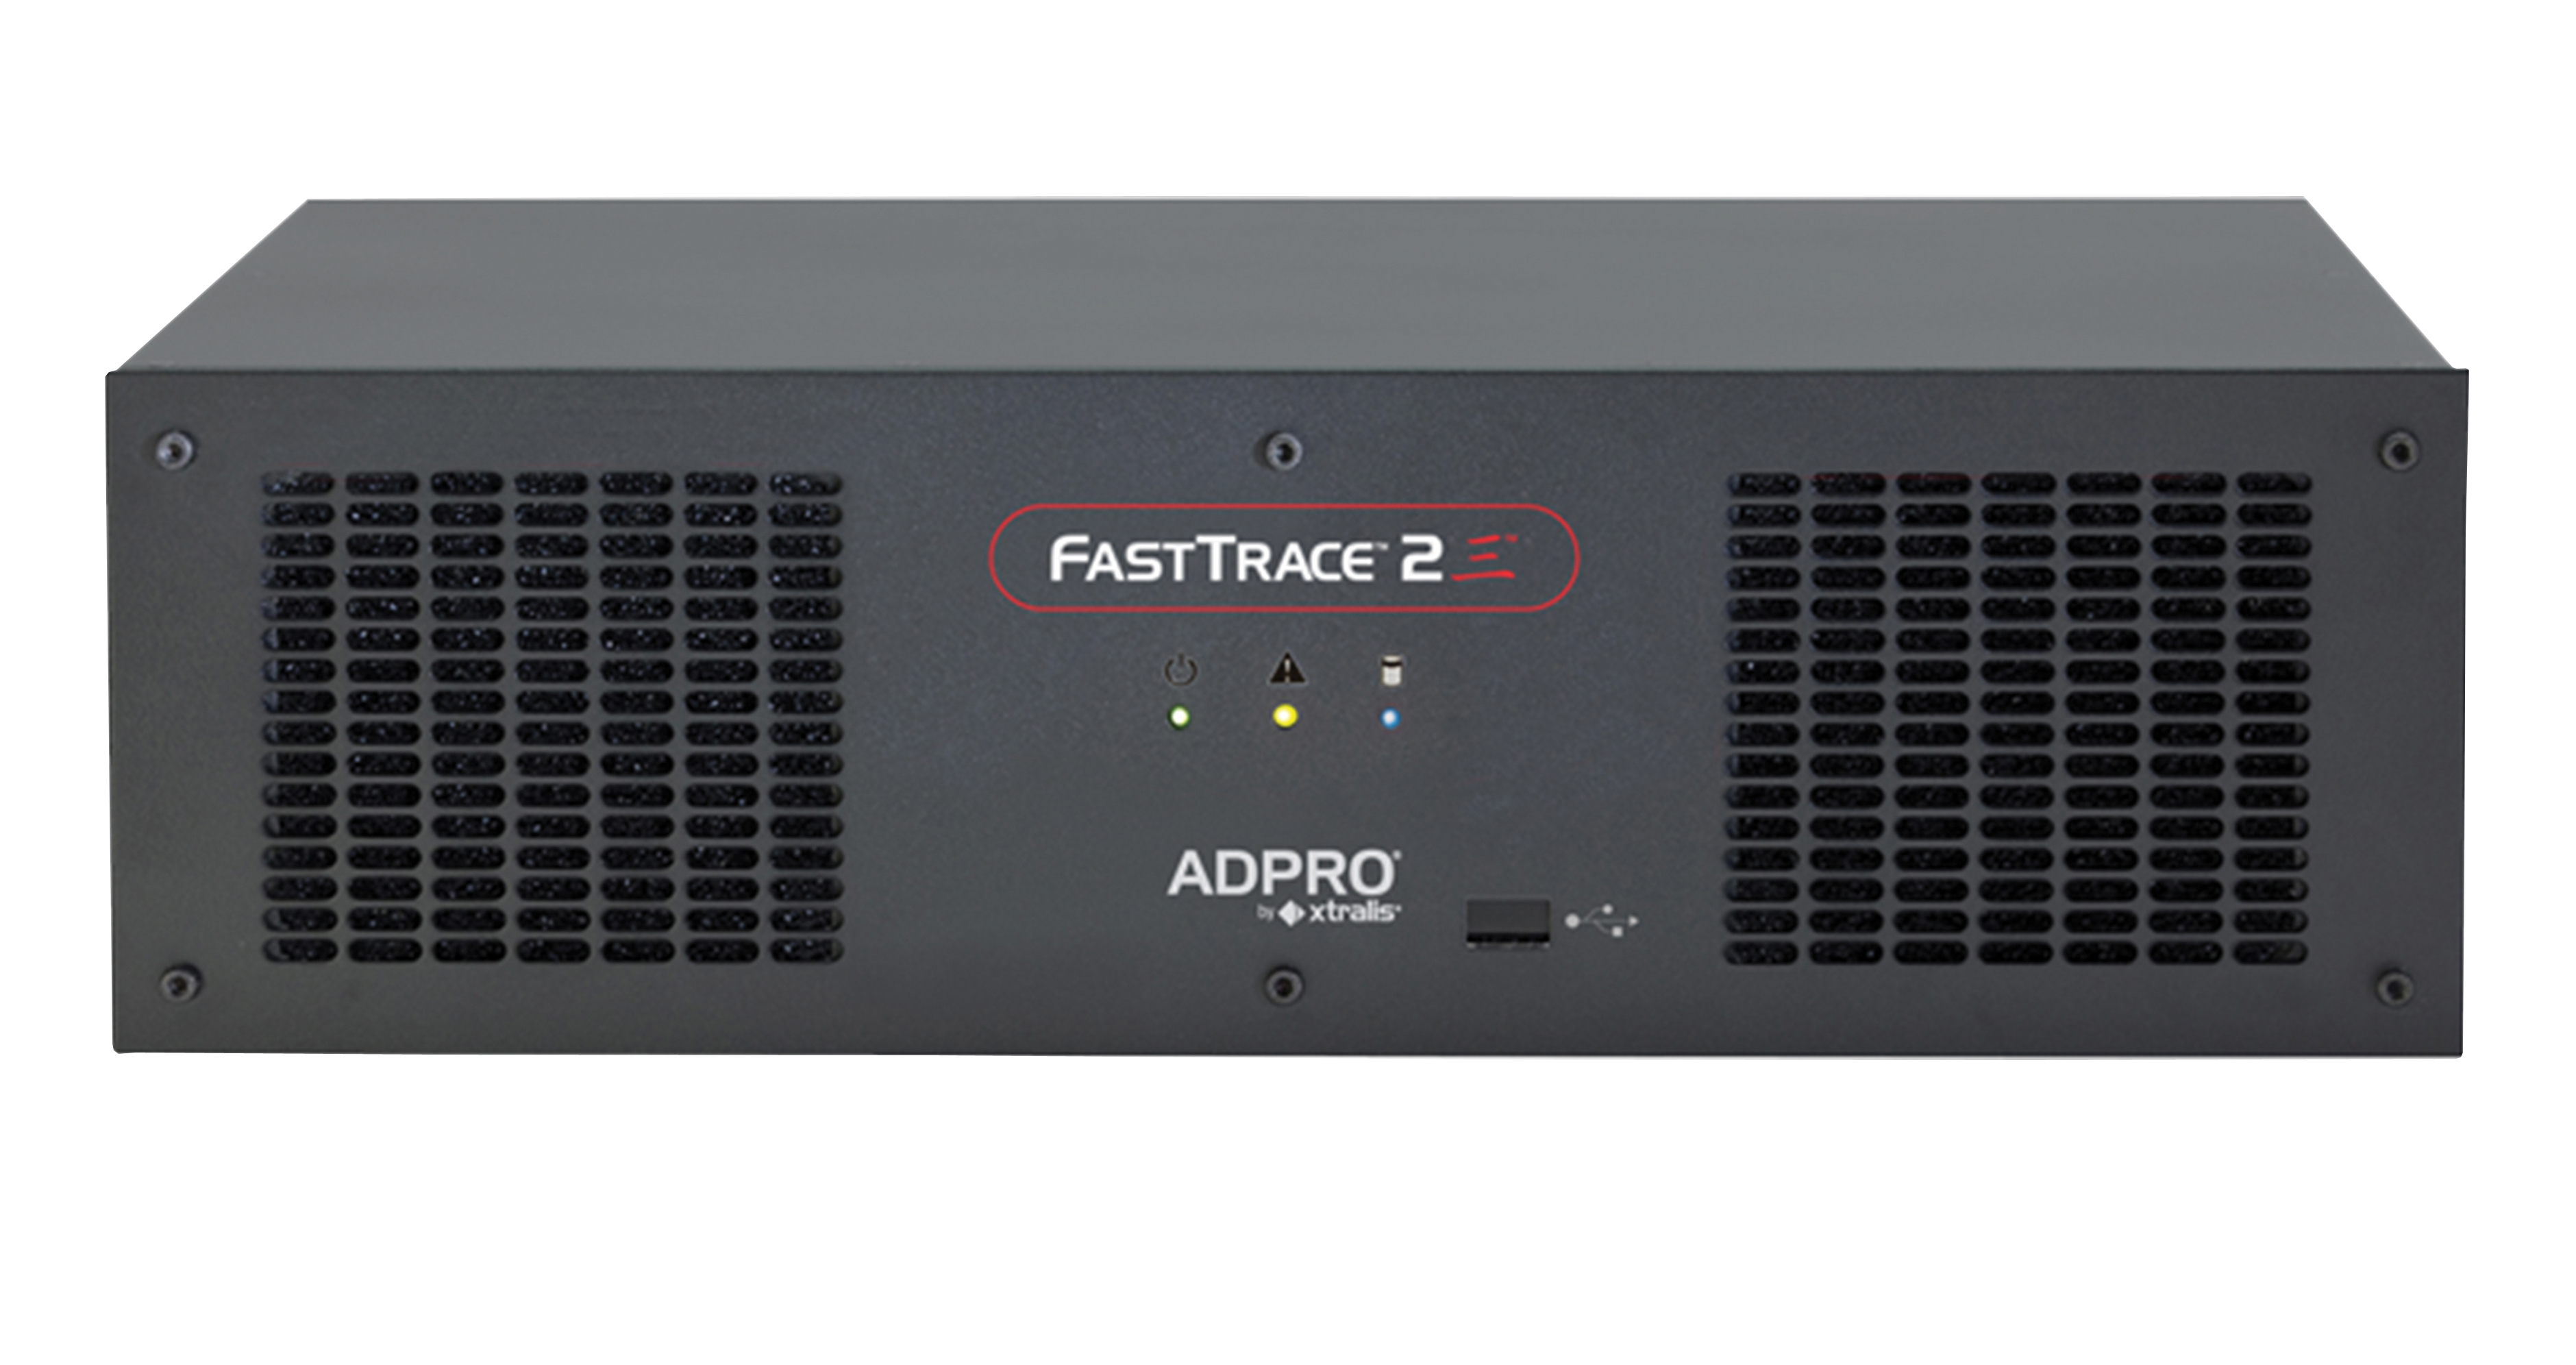 ADPRO FastTrace 2E NVR+ - 12 Analogueue Channels